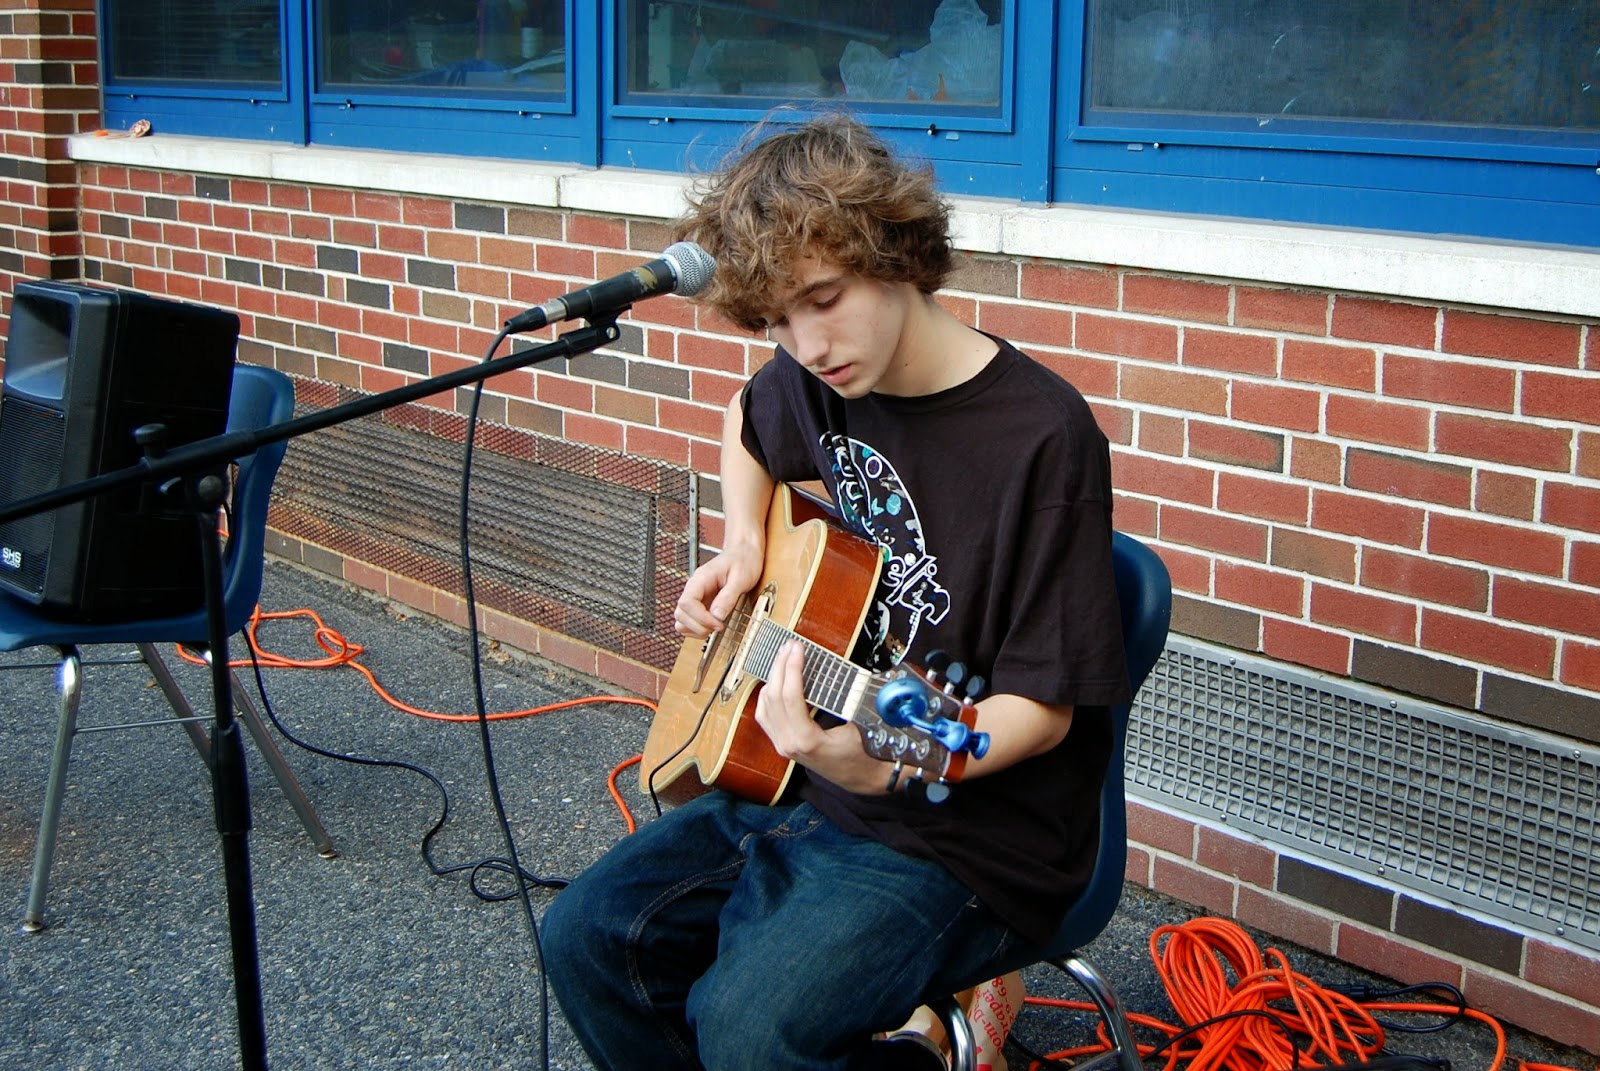 music was provided by Tyler Zajac